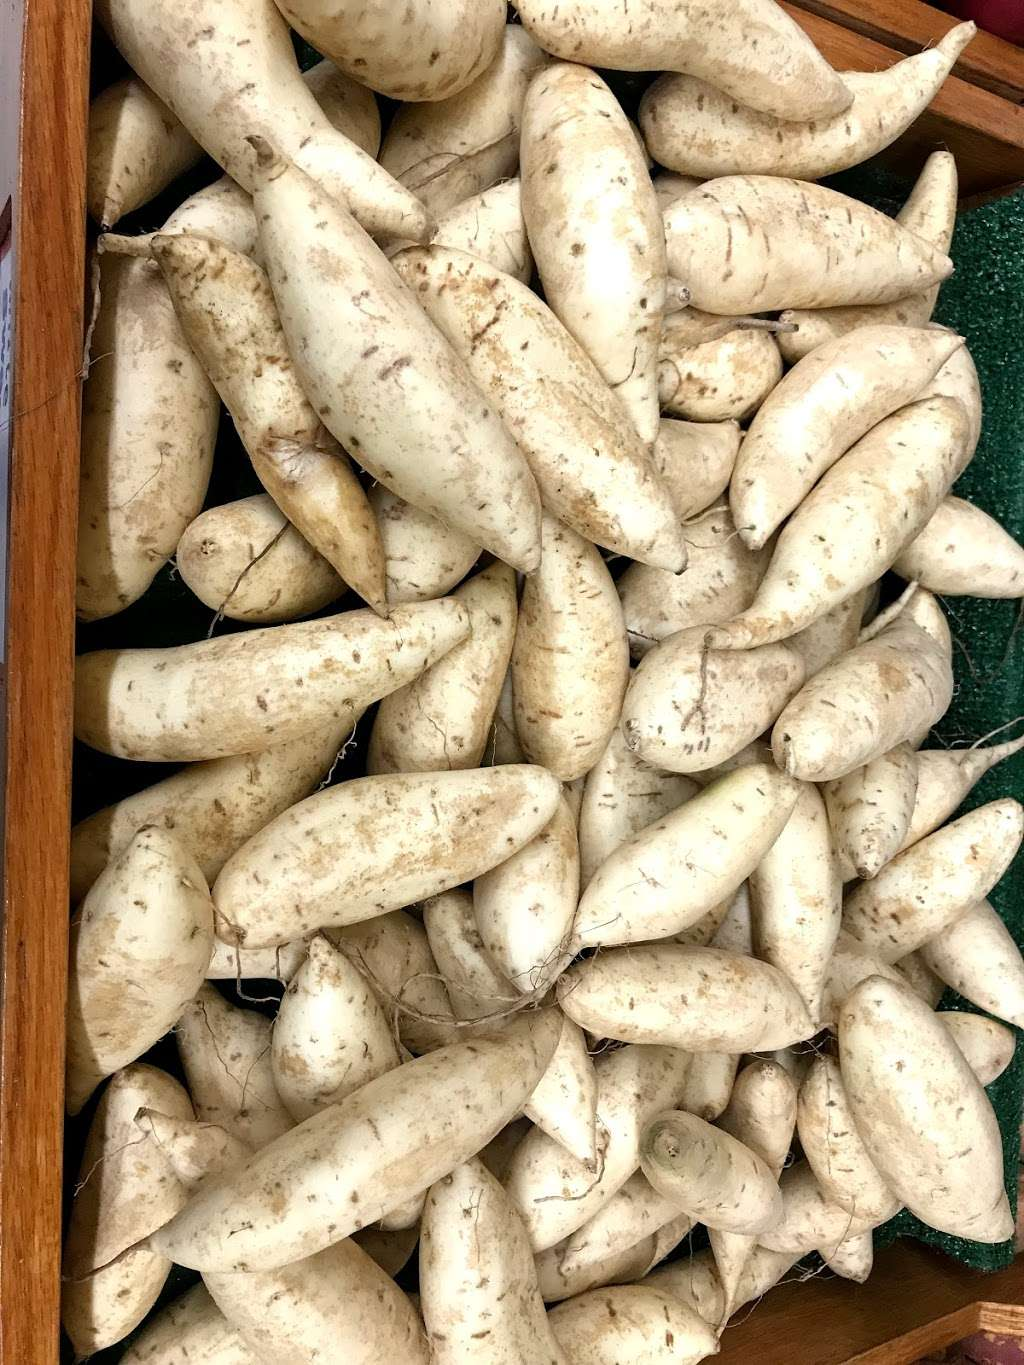 Haymana Produce Market - store  | Photo 6 of 10 | Address: 11312 Reisterstown Rd, Owings Mills, MD 21117, USA | Phone: (410) 998-3100